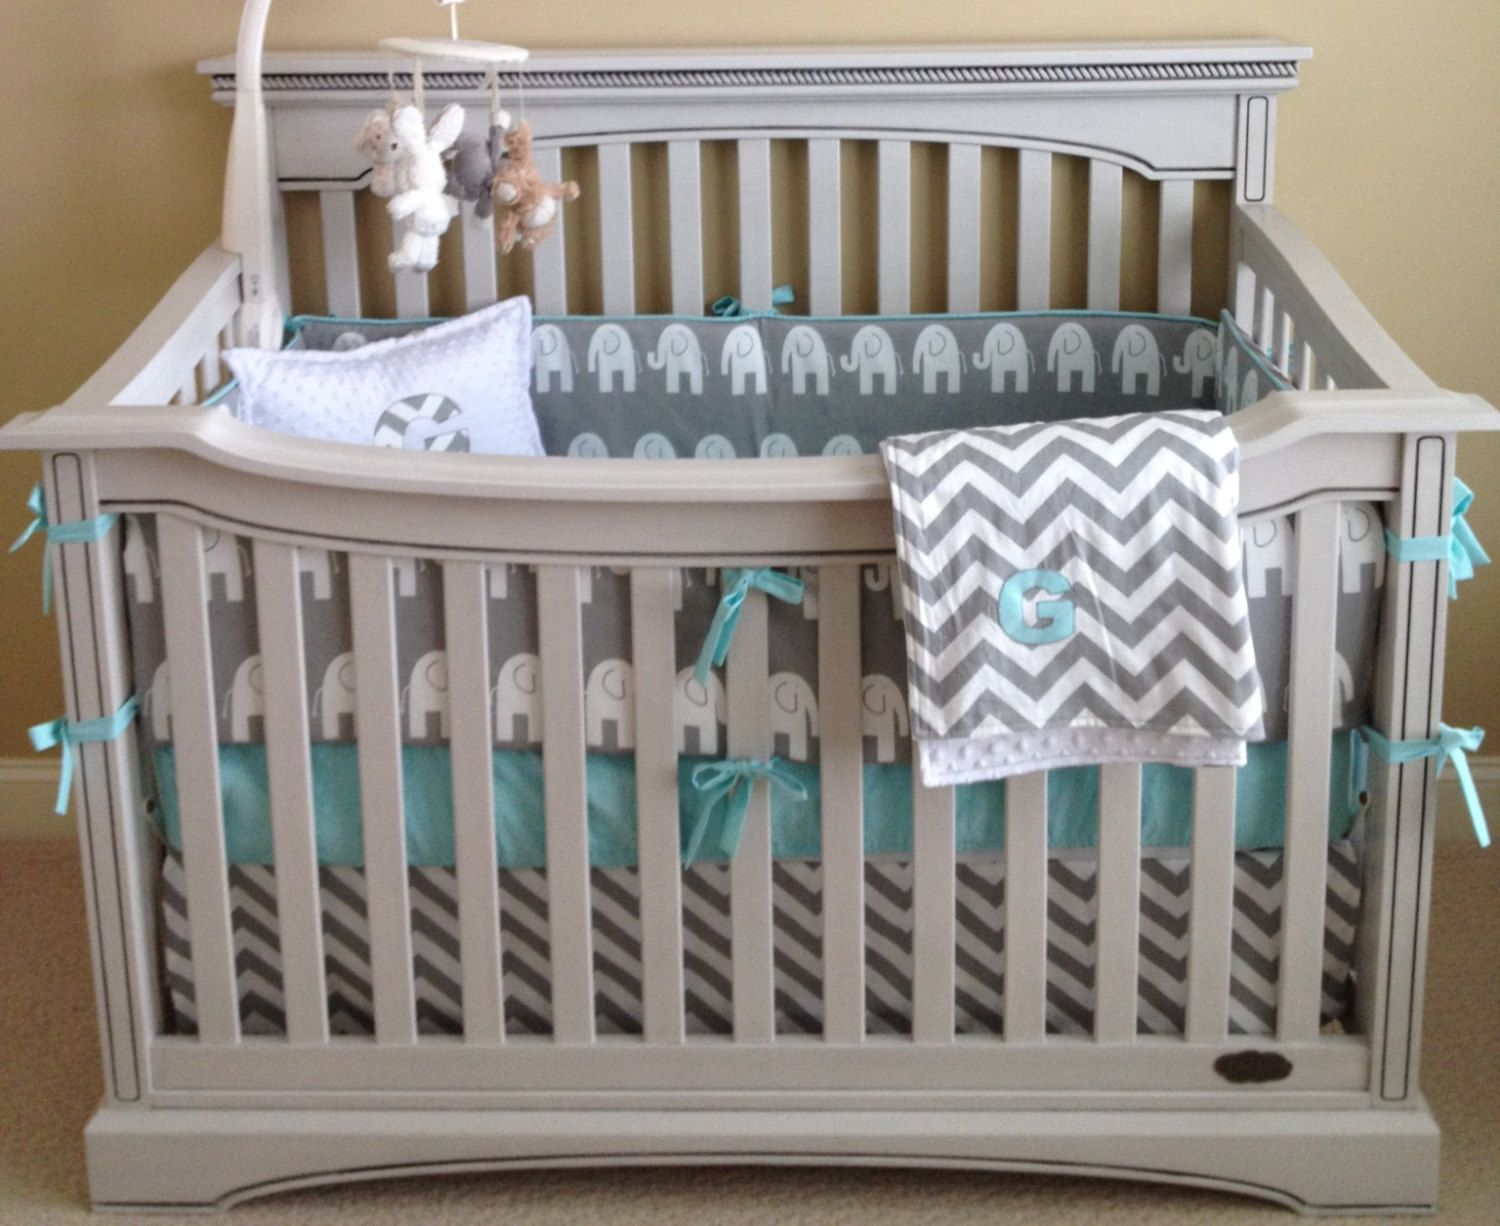 2 Piece Custom Nursery Crib Bedding Set Premier Prints You Design Grey And White Elephant Chevron Skirt Per 235 00 Via Etsy